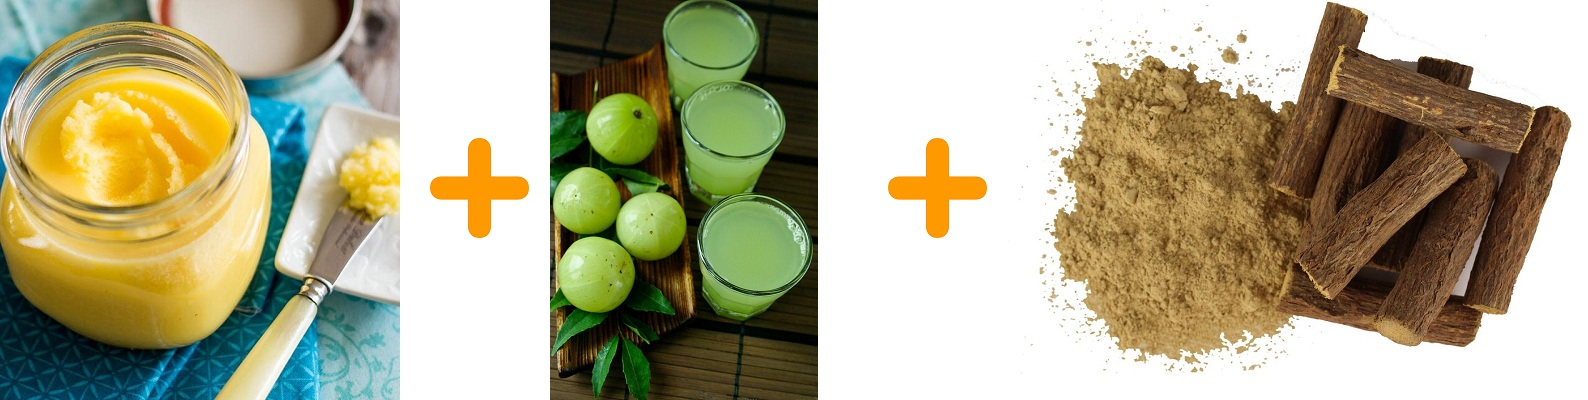 Ghee Amla Mulethi Mix For Black Hair